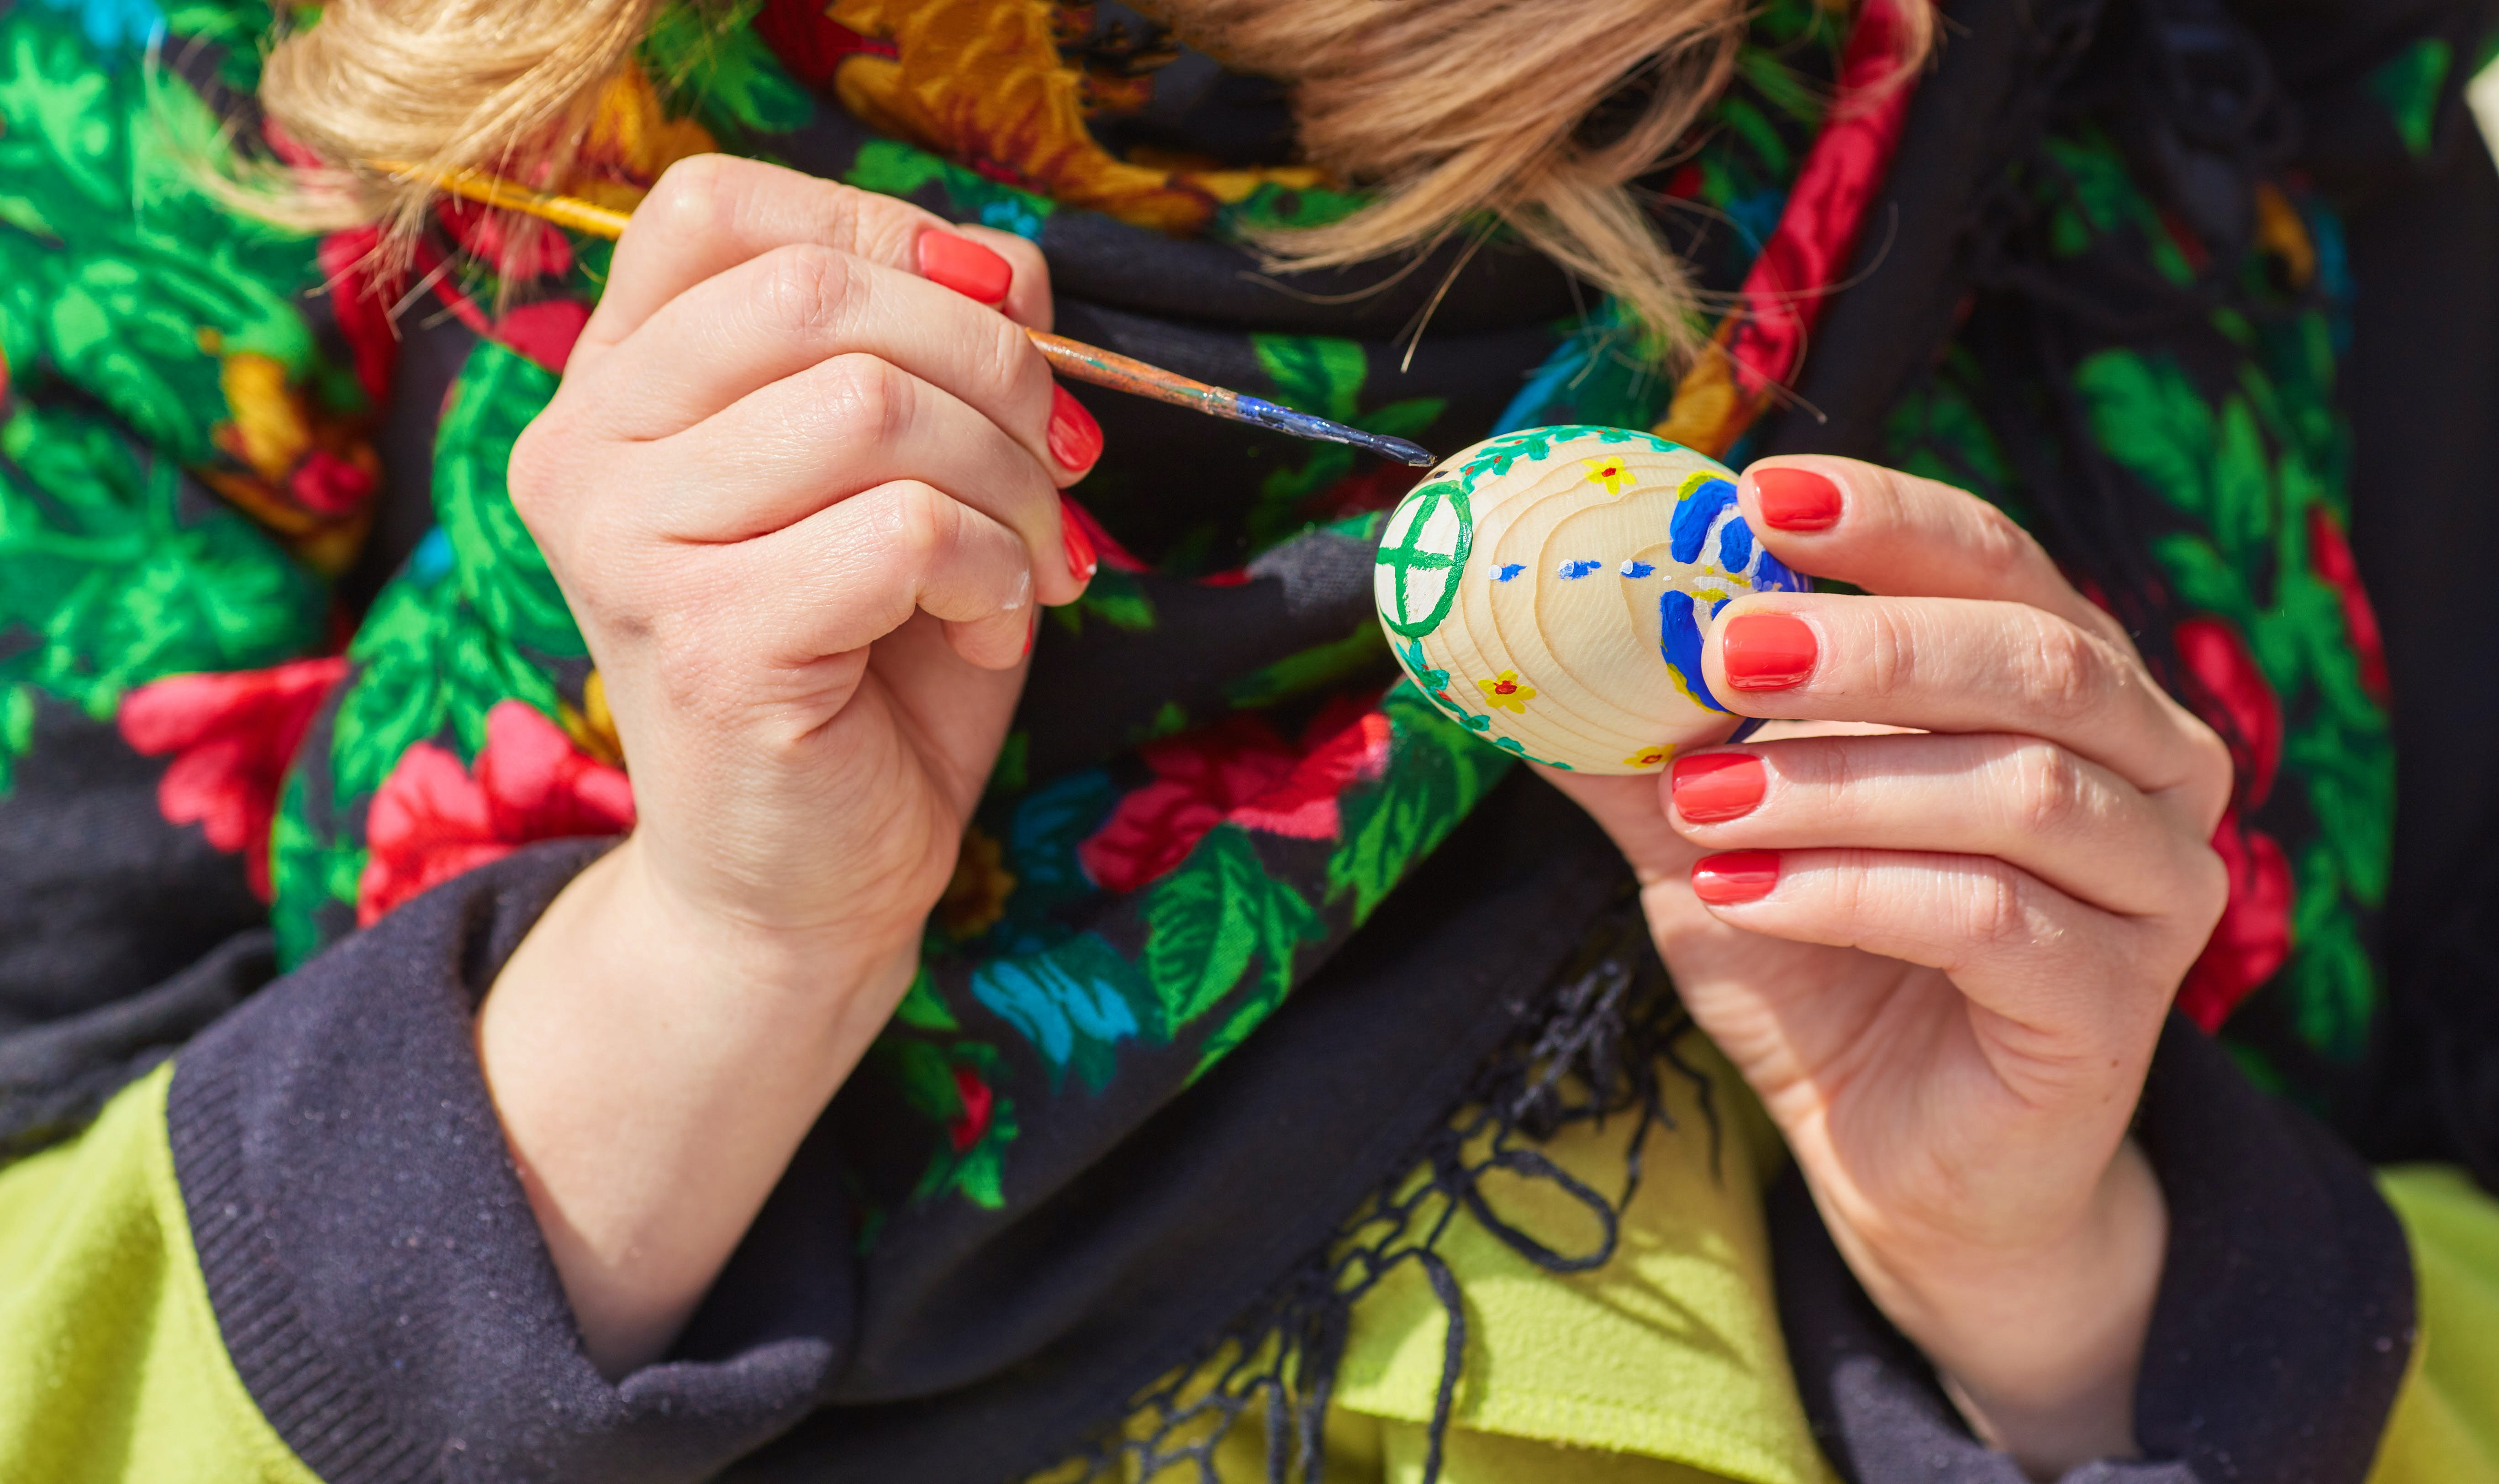 A woman using a fine paintbrush to paint the shell of a hard-boiled egg with an intricate, traditional folk design.